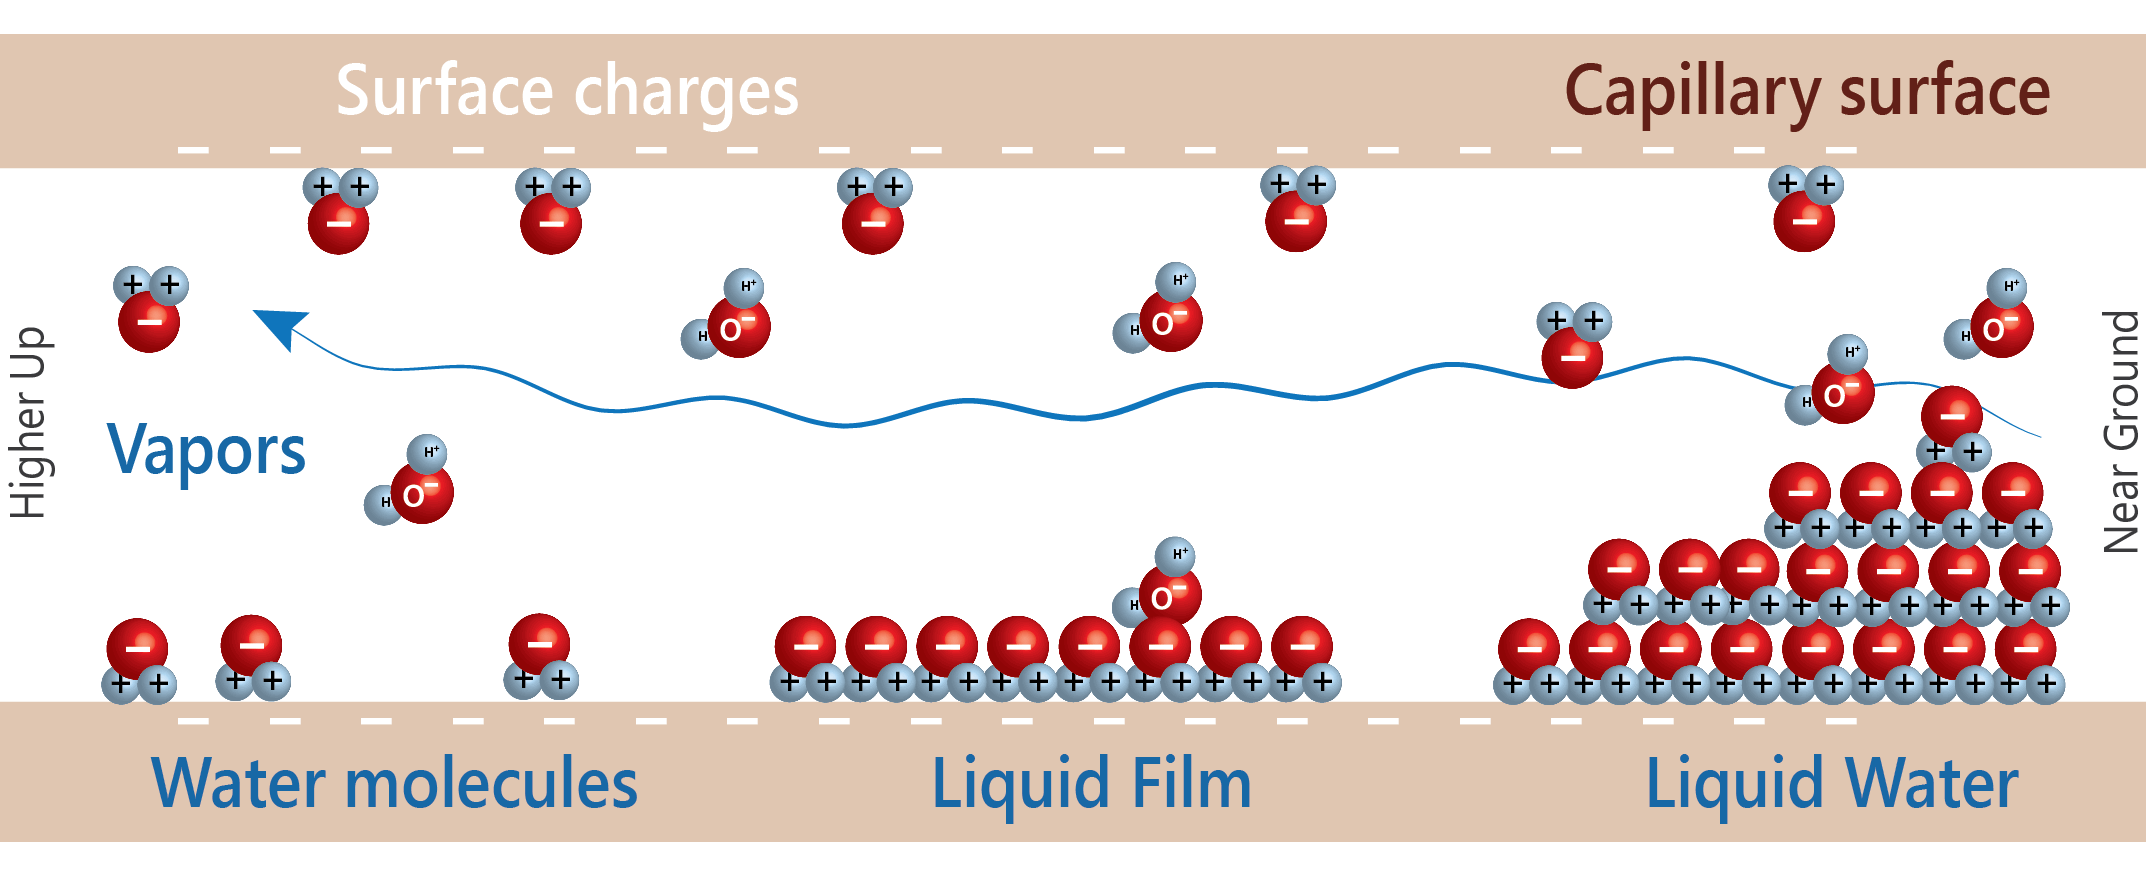 Surface charges